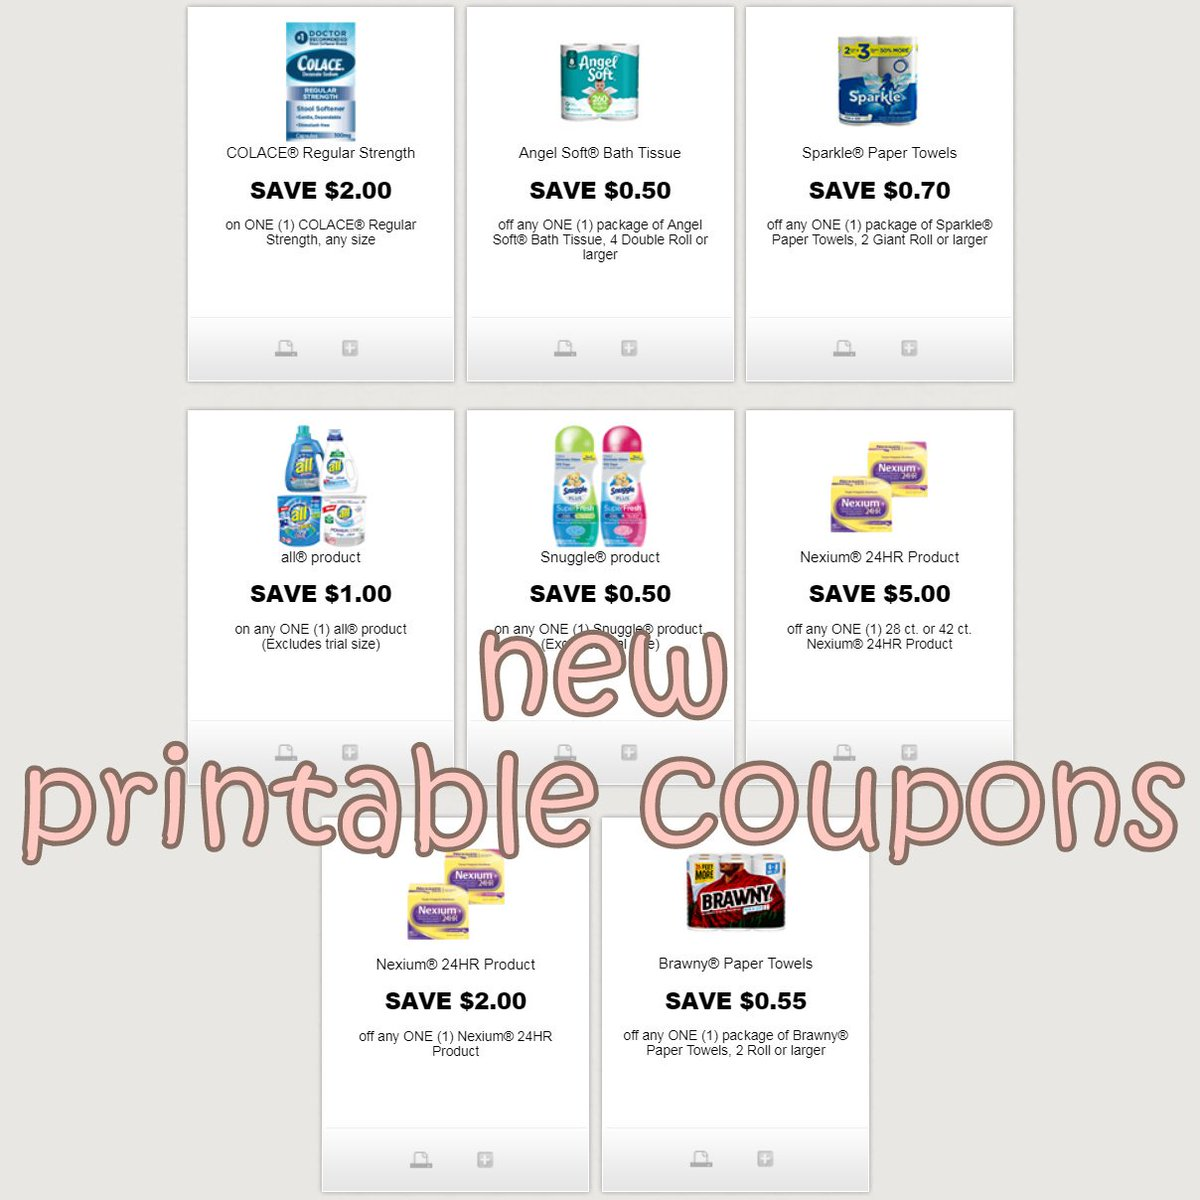 image regarding Sparkle Coupons Printable identify i 💟 coupon codes upon Twitter: \